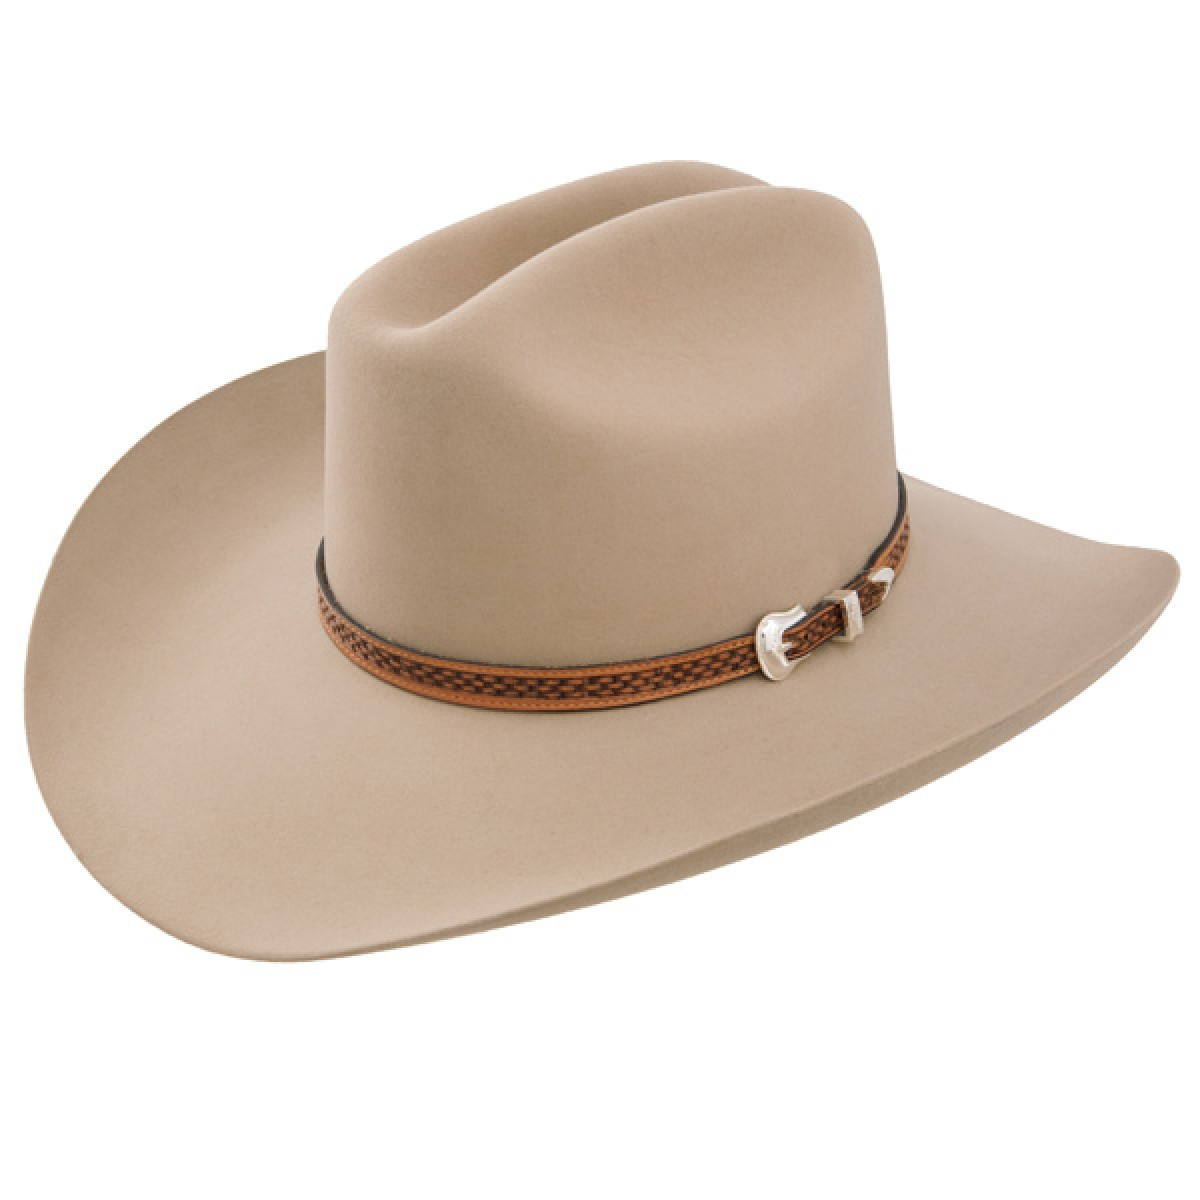 Get naughty with cowboy hats